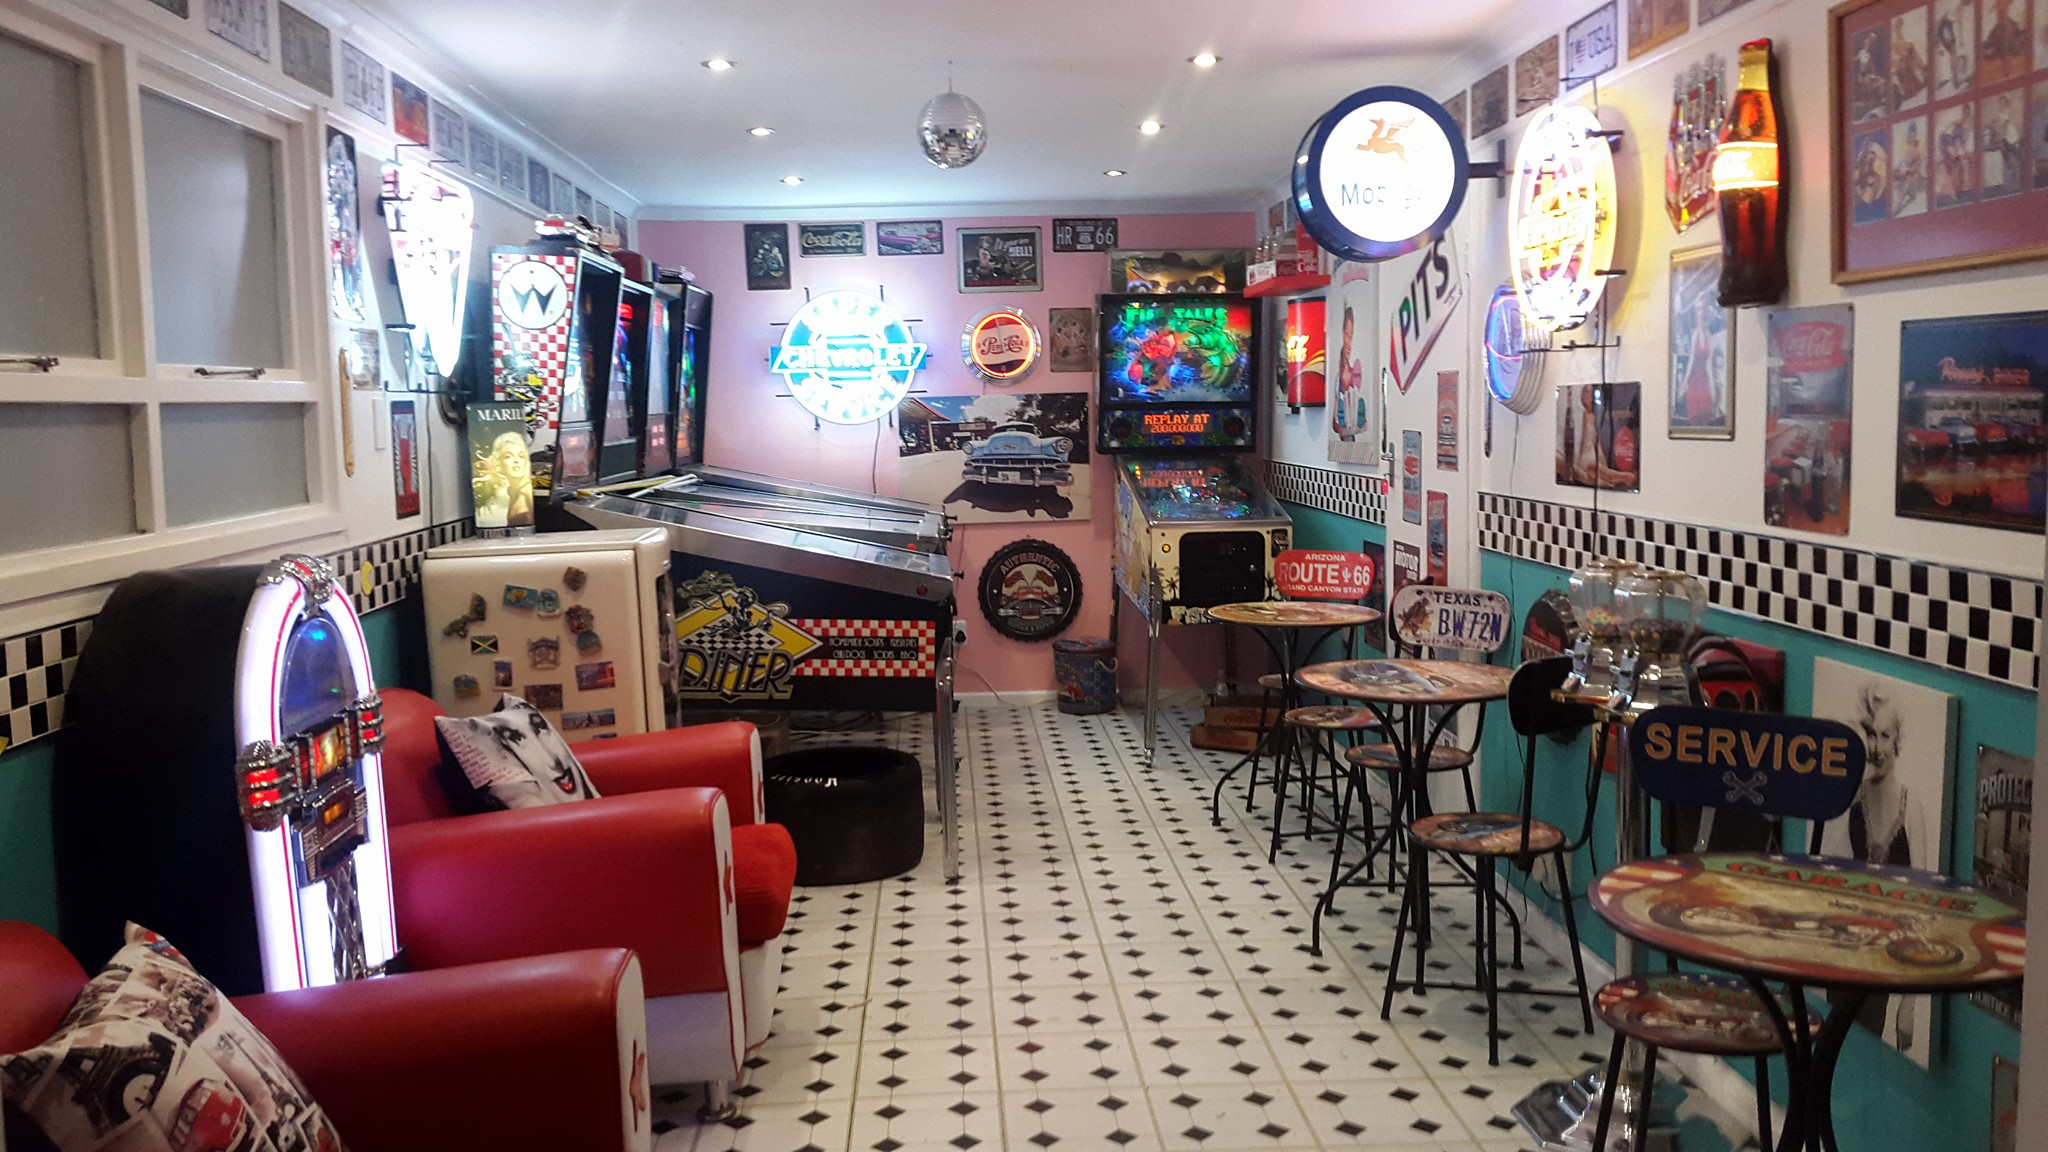 Game room of the week this week in pinball for My new room 4 decor games